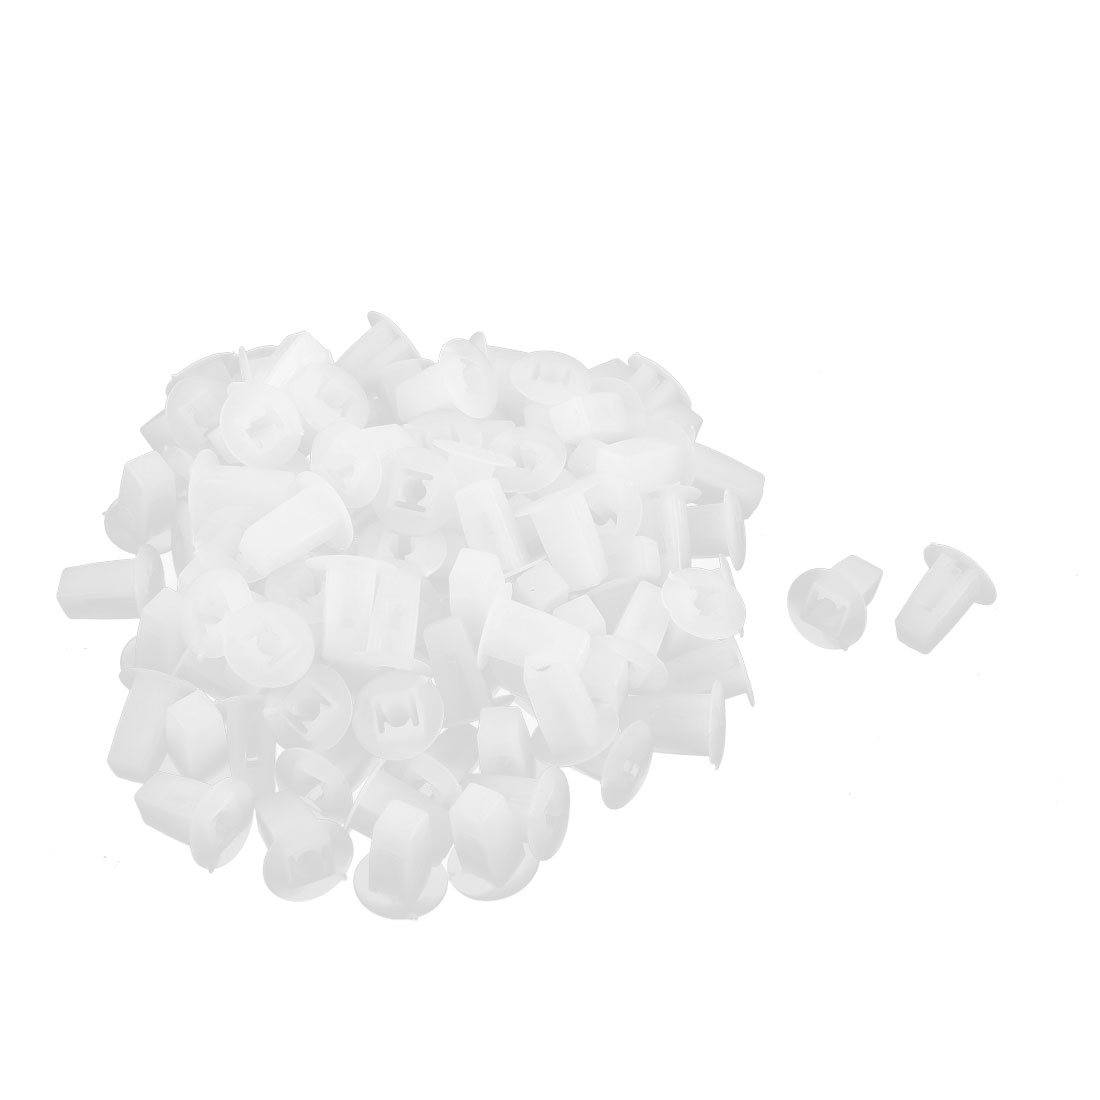 100 Pcs White Plastic Rivet Trim Fastener Moulding Clips 4mm x 16mm x 17mm